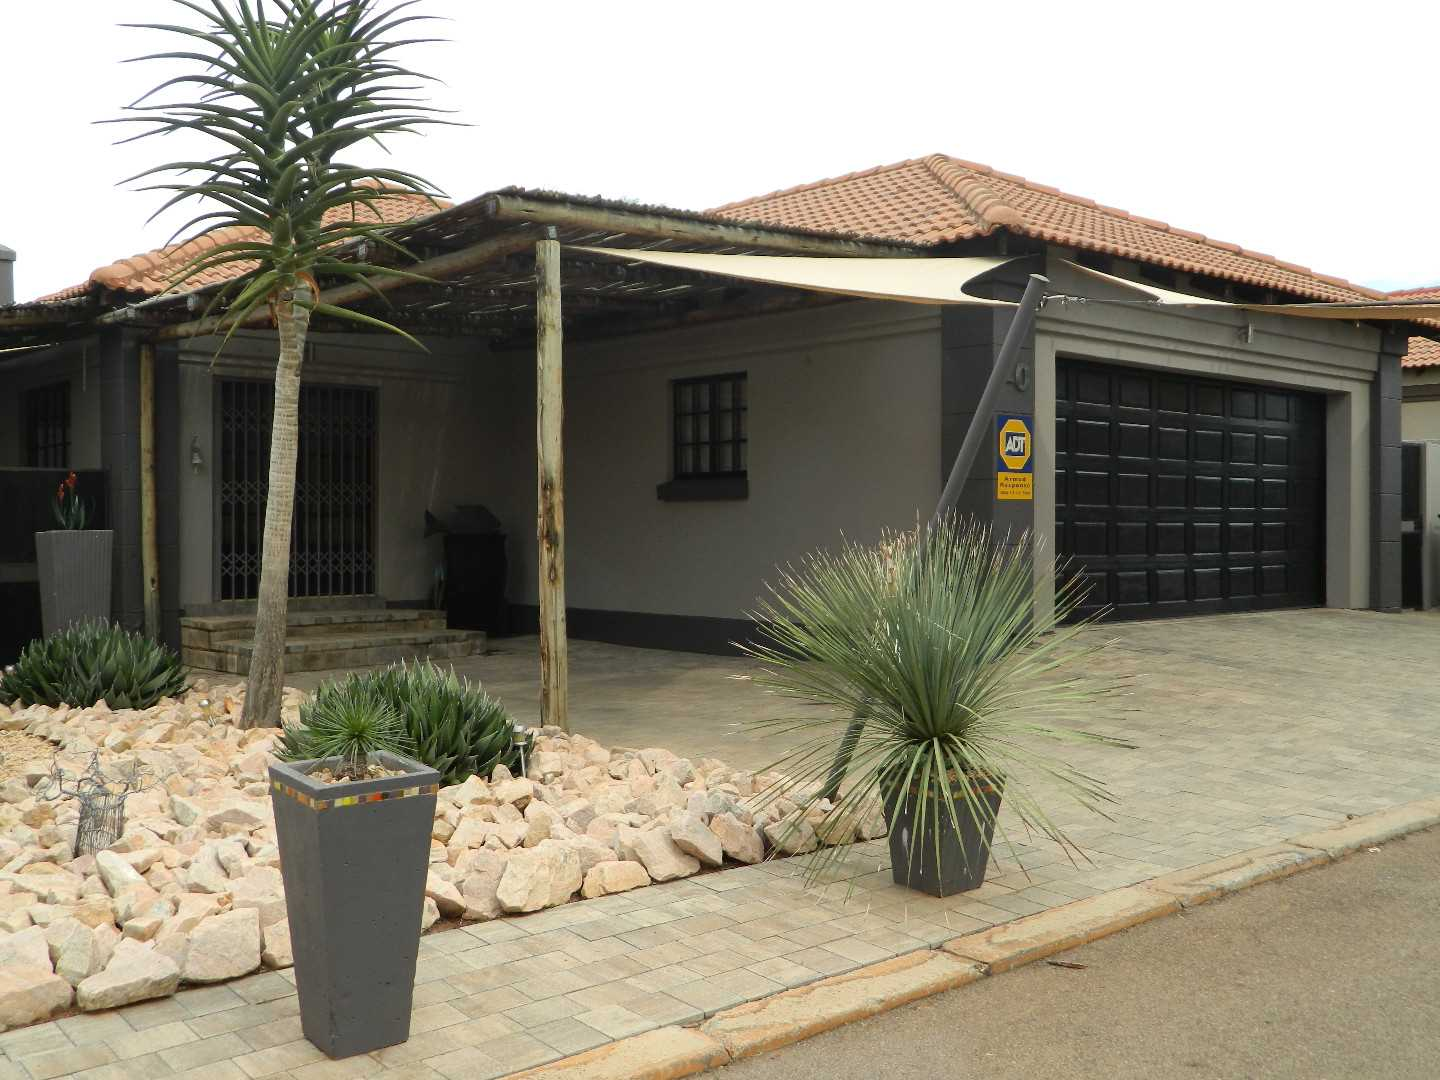 Street view of property